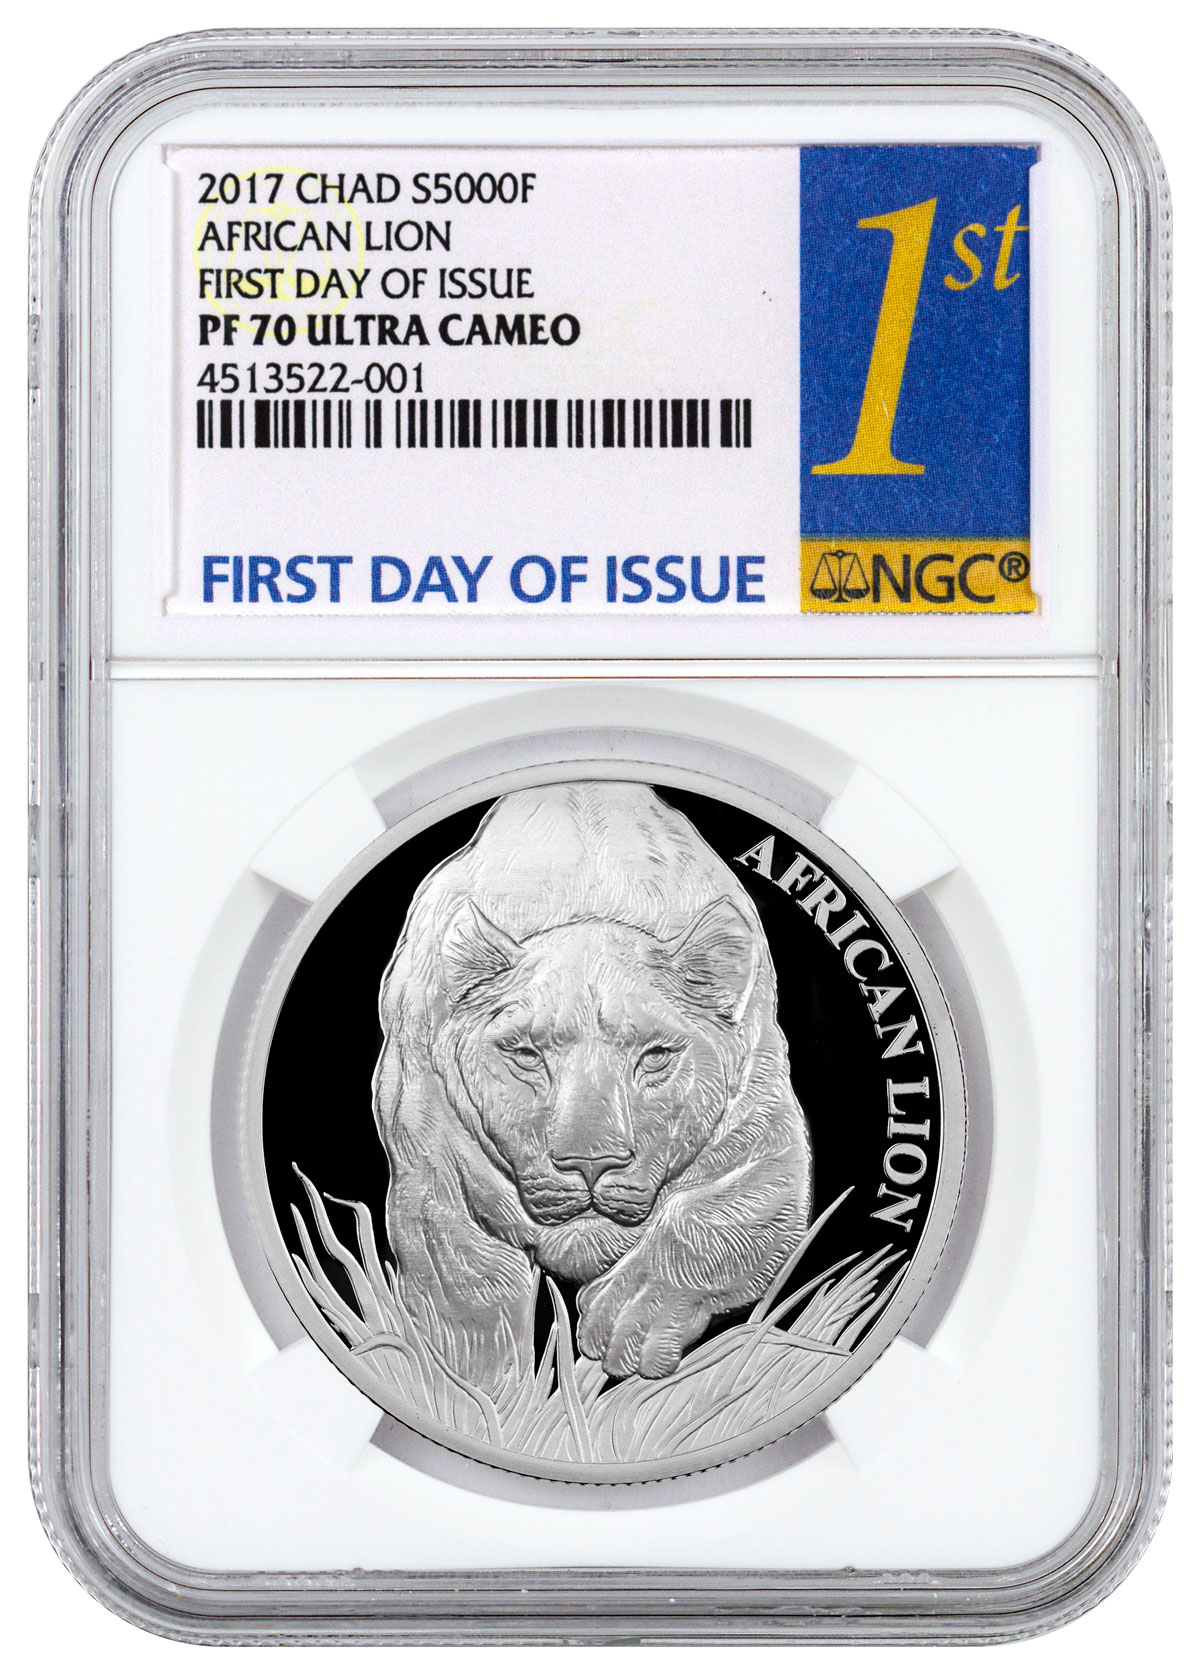 2017 Republic of Chad African Lion - 1 oz Silver Proof 5000 Franc Coin NGC PF70 UC FDI